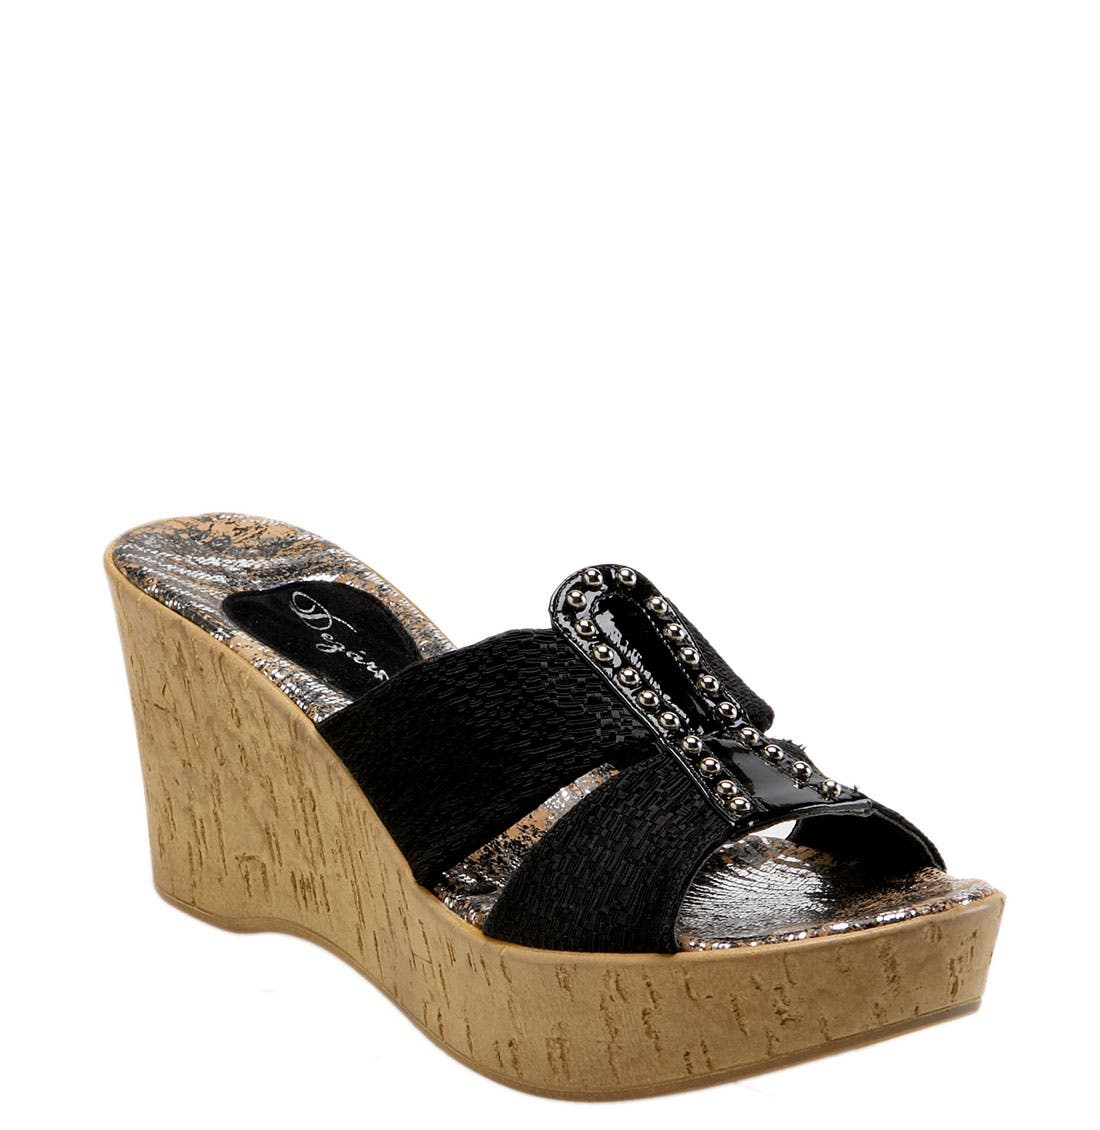 Alternate Image 1 Selected - Dezario 'Nanor' Wedge Sandal